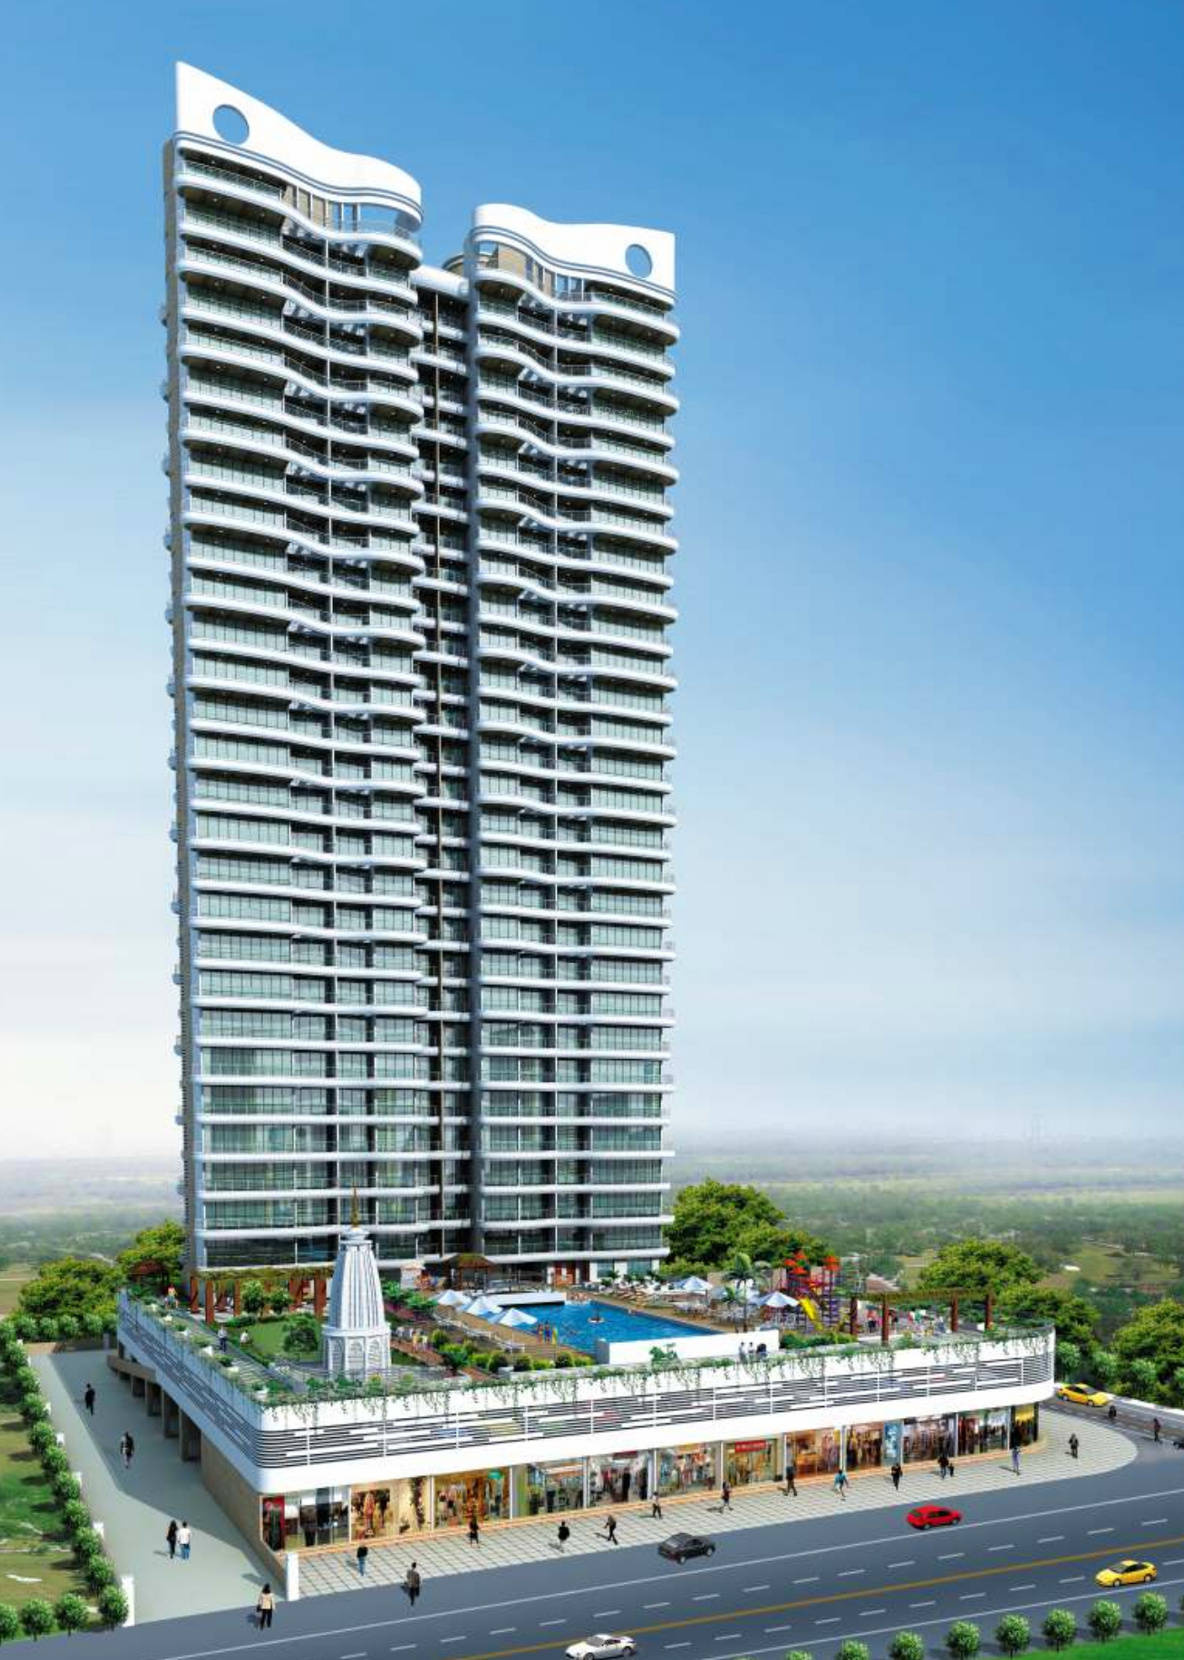 1265 sq ft 2BHK 2BHK+2T (1,265 sq ft) Property By Bhoomi Enterprises In Sai Miracle, Kharghar